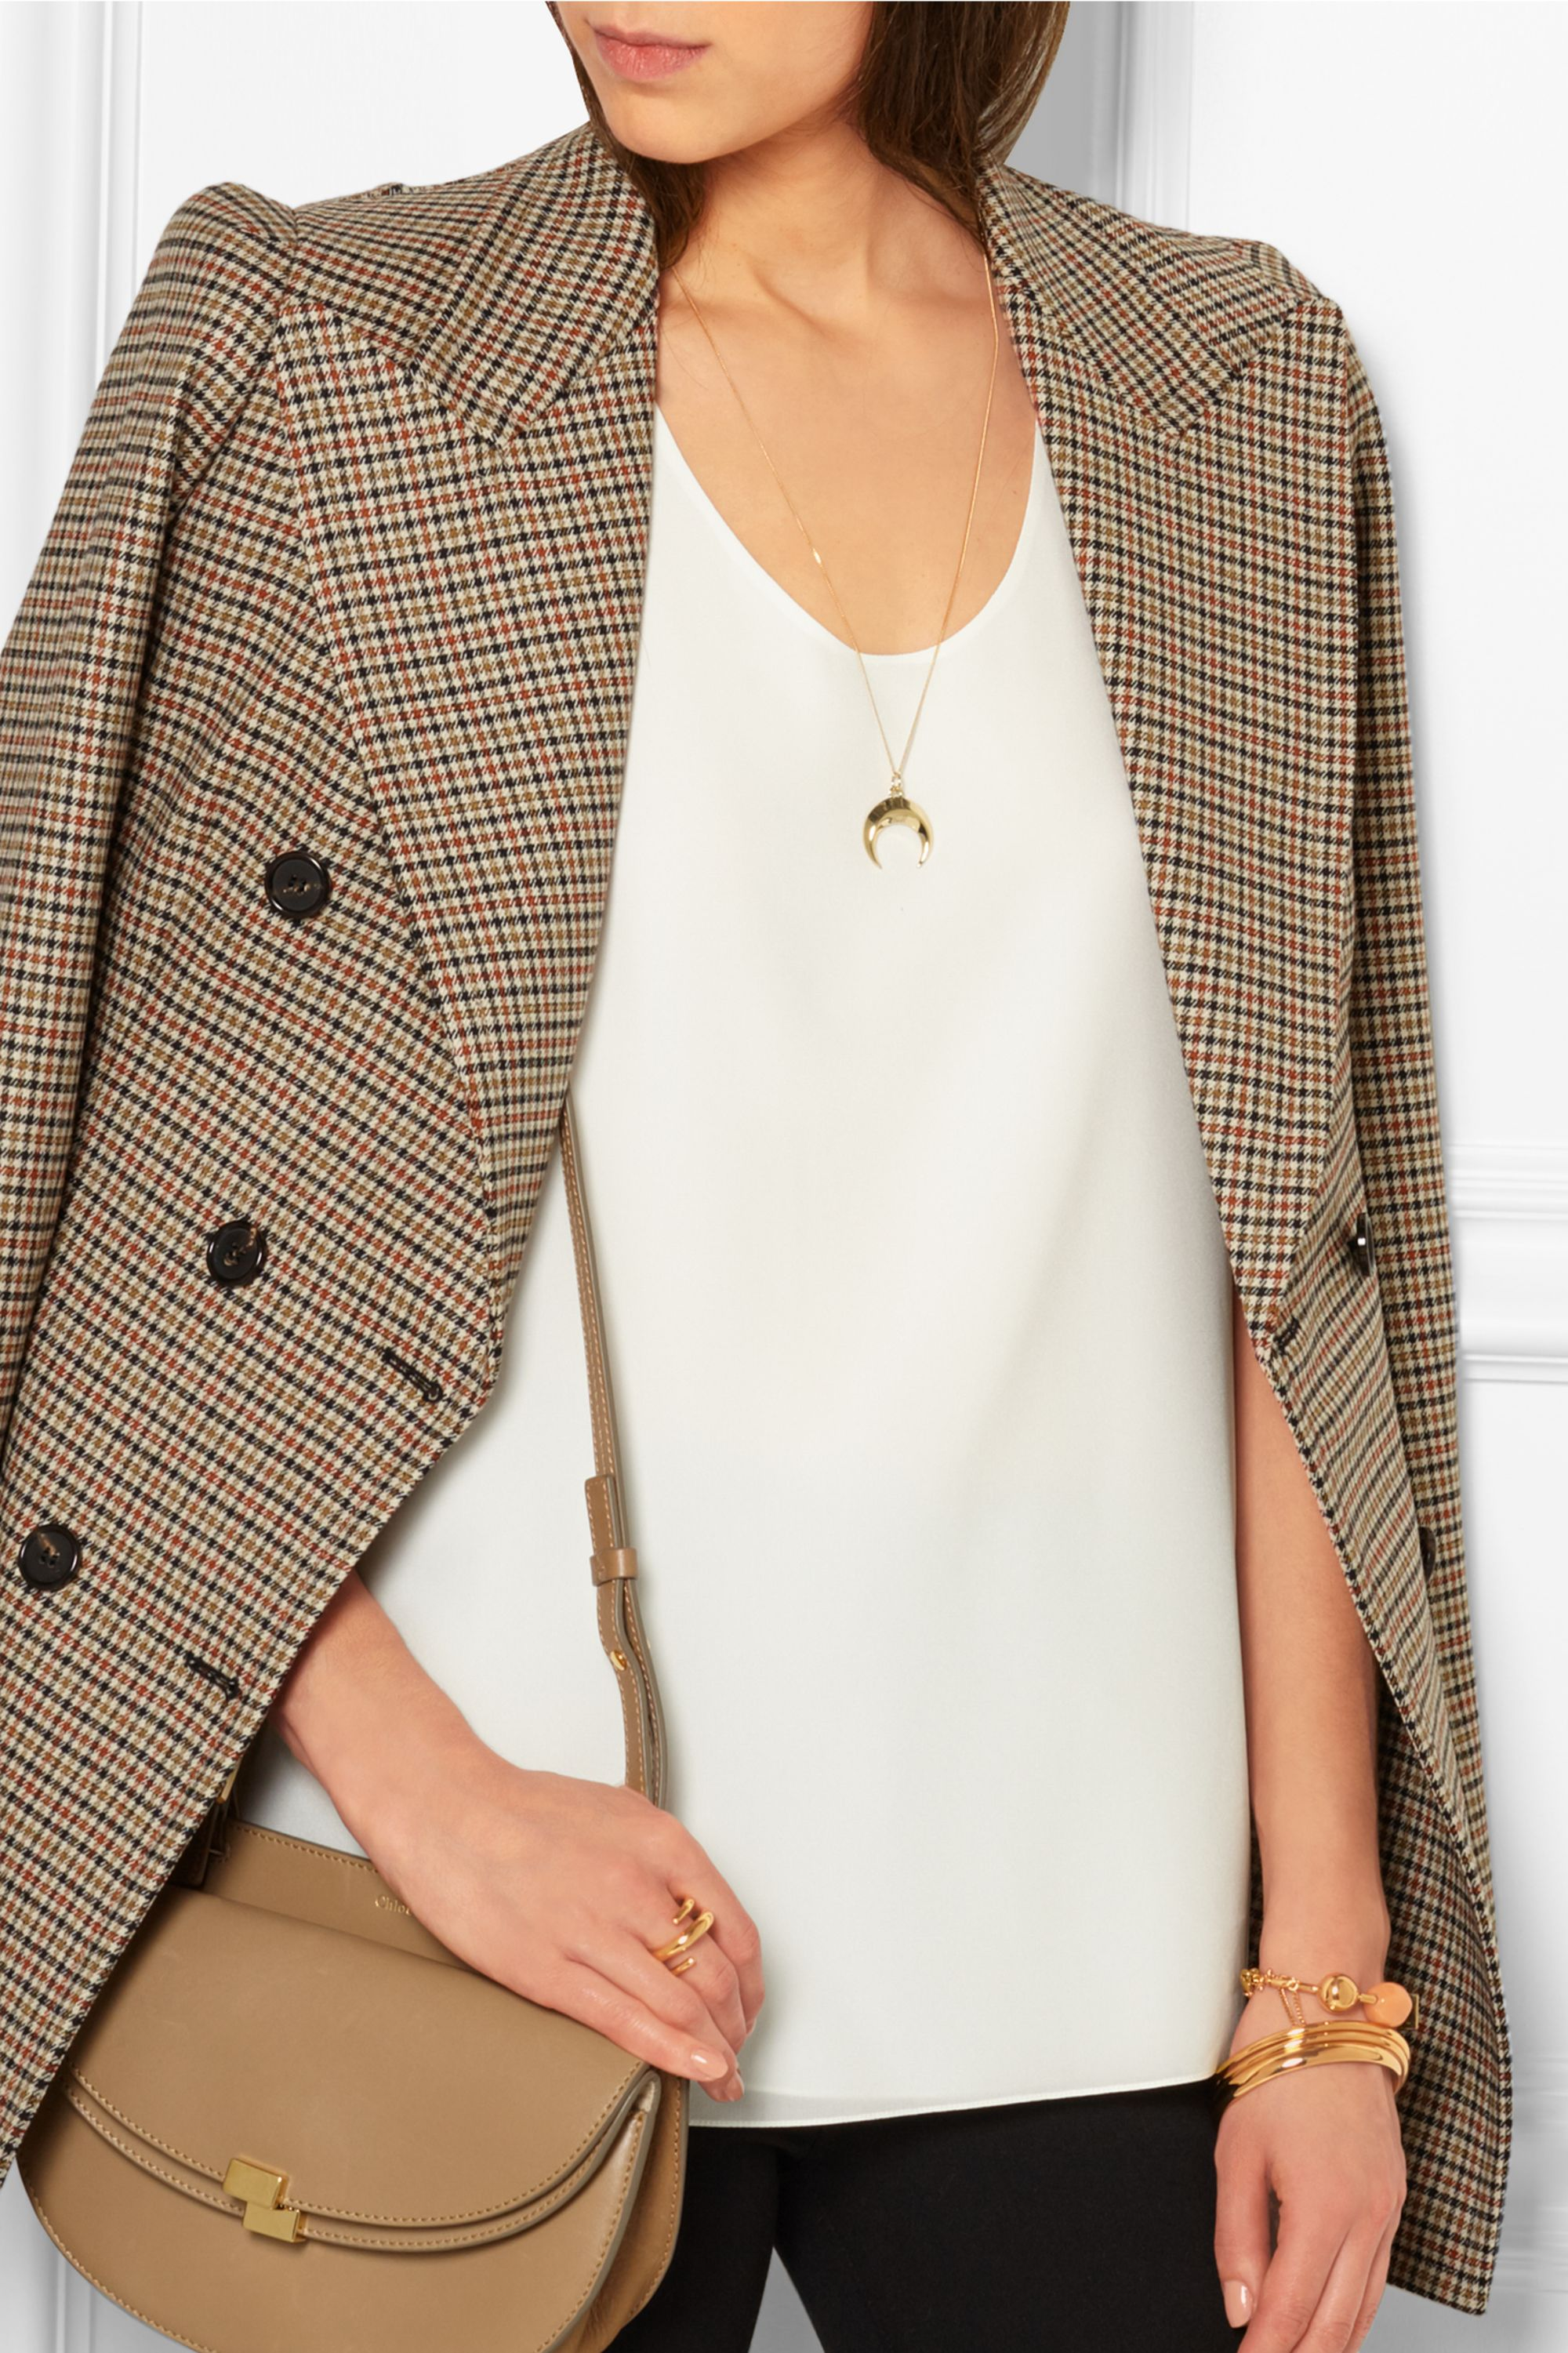 Chloé Isalis gold-tone necklace